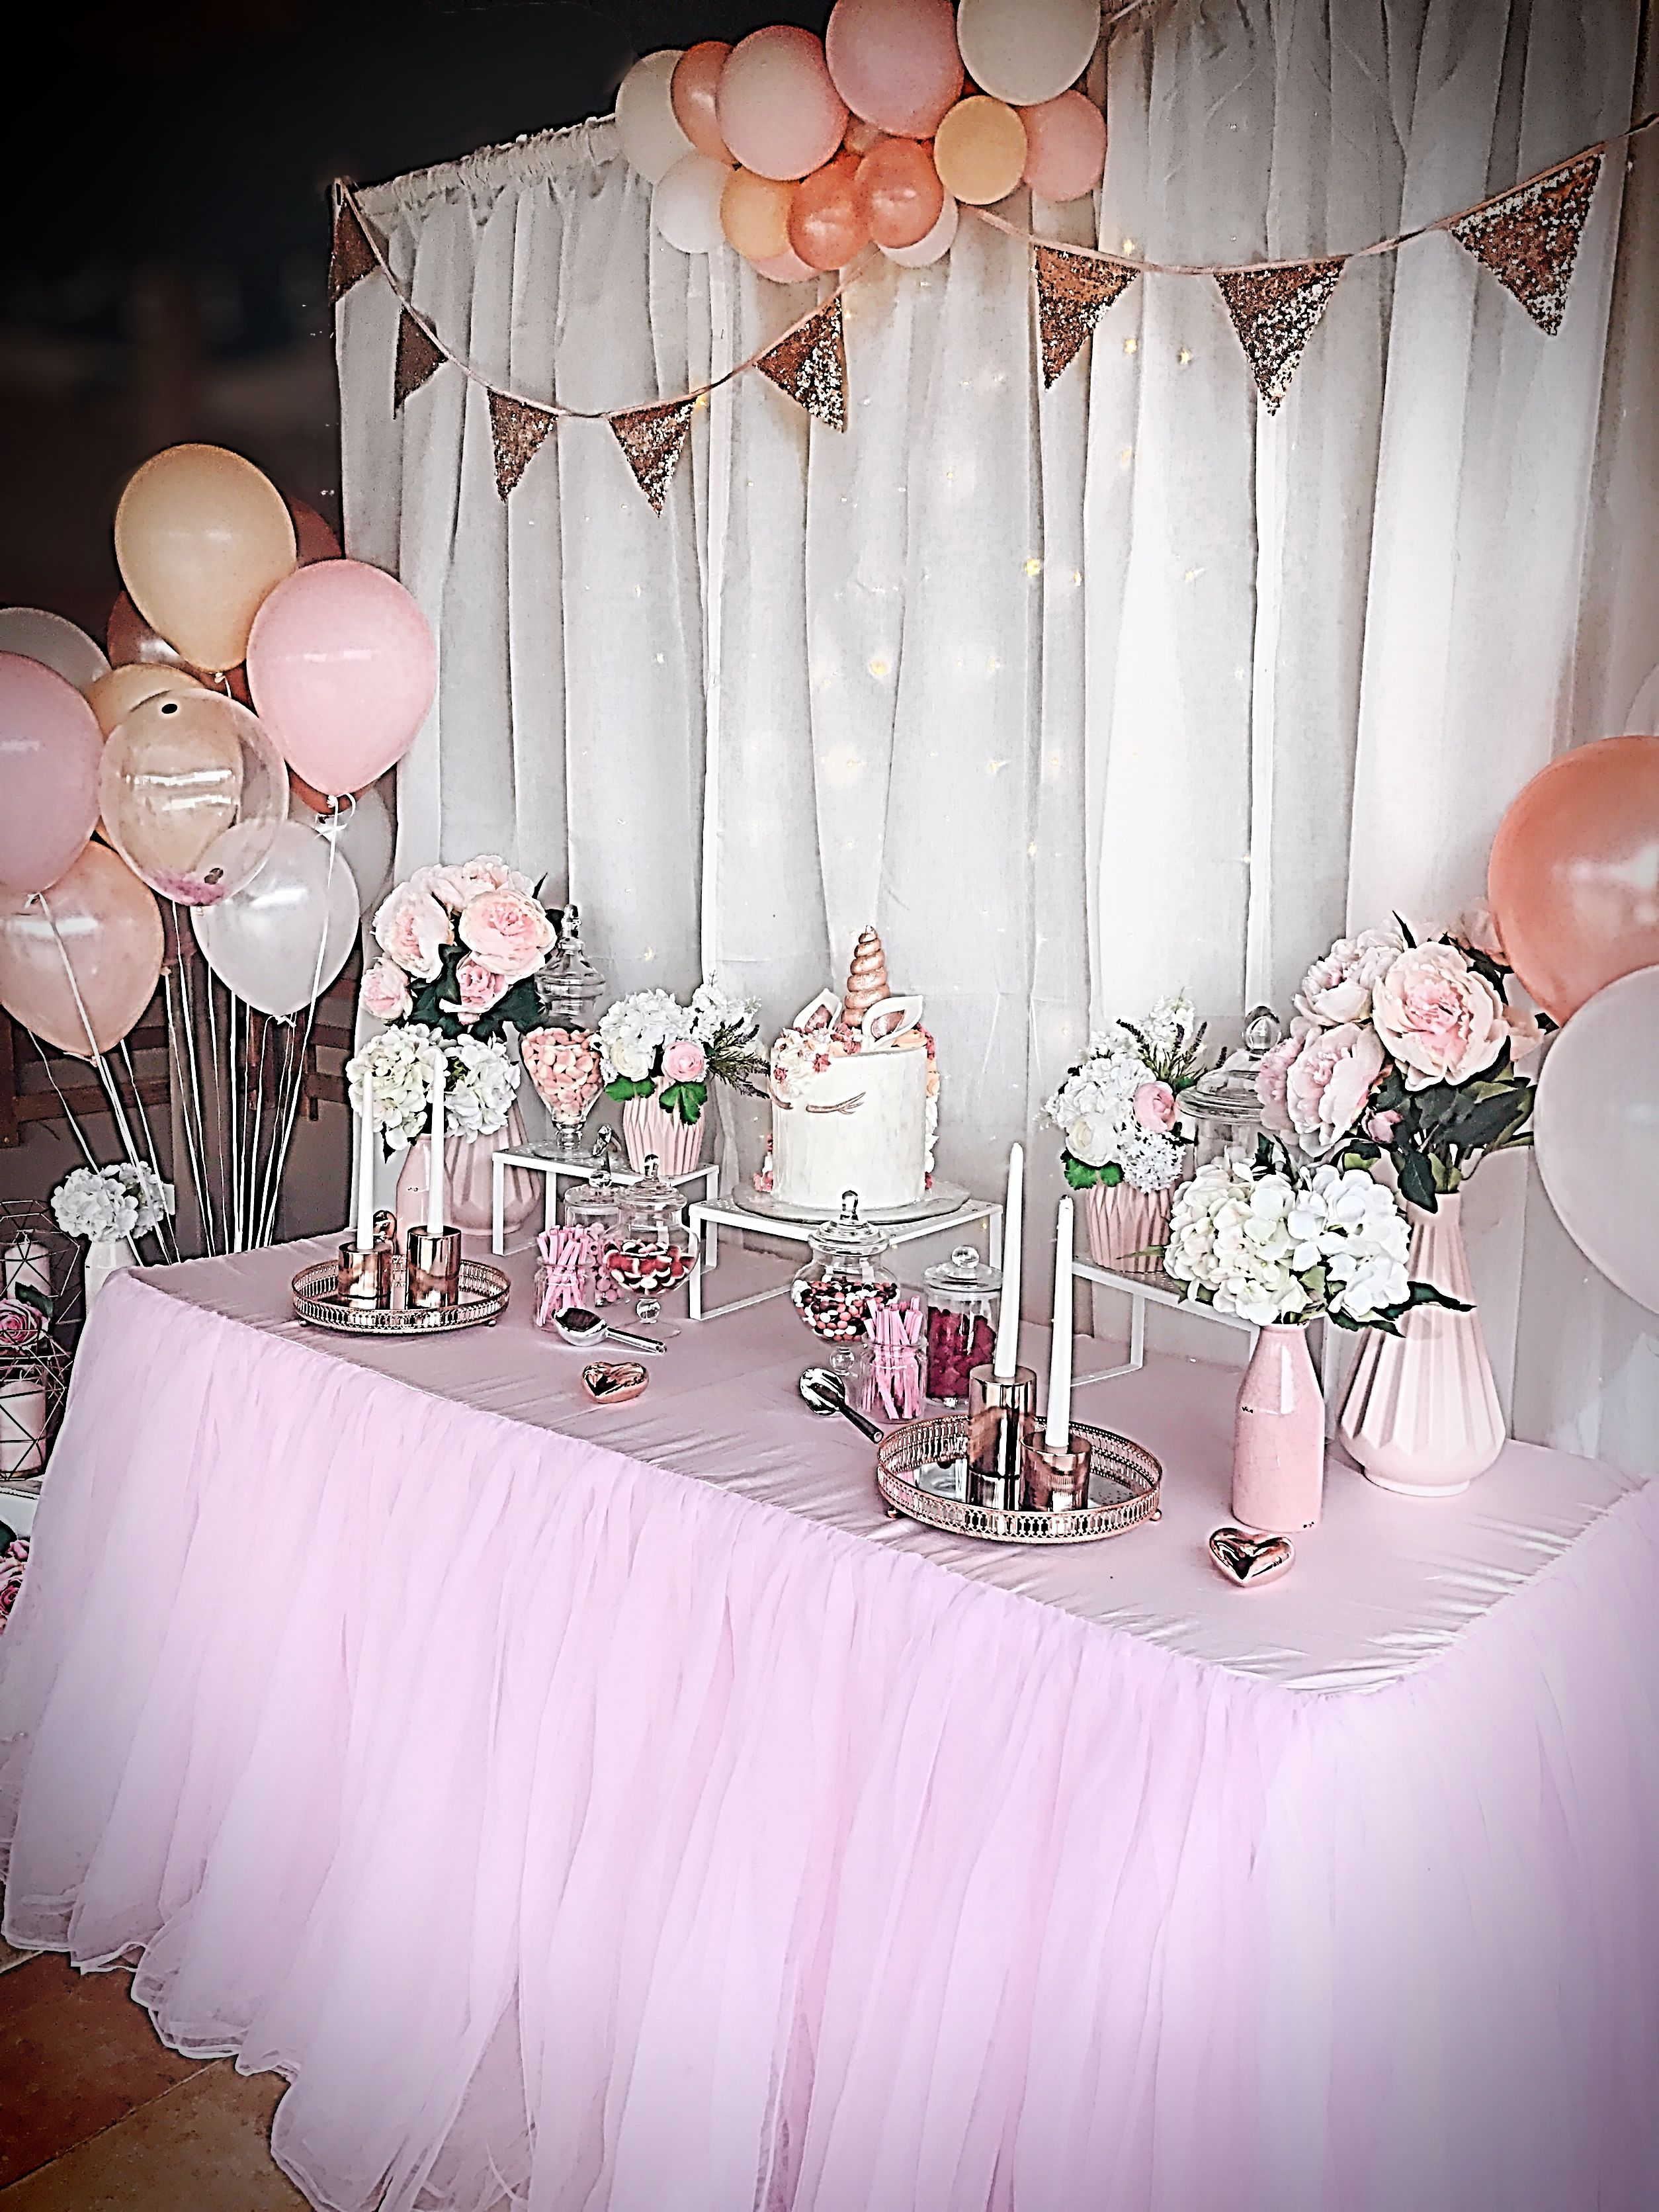 Tremendous Blush Pink And Rose Gold Buffet Styling Stylish Soirees In Interior Design Ideas Gentotryabchikinfo